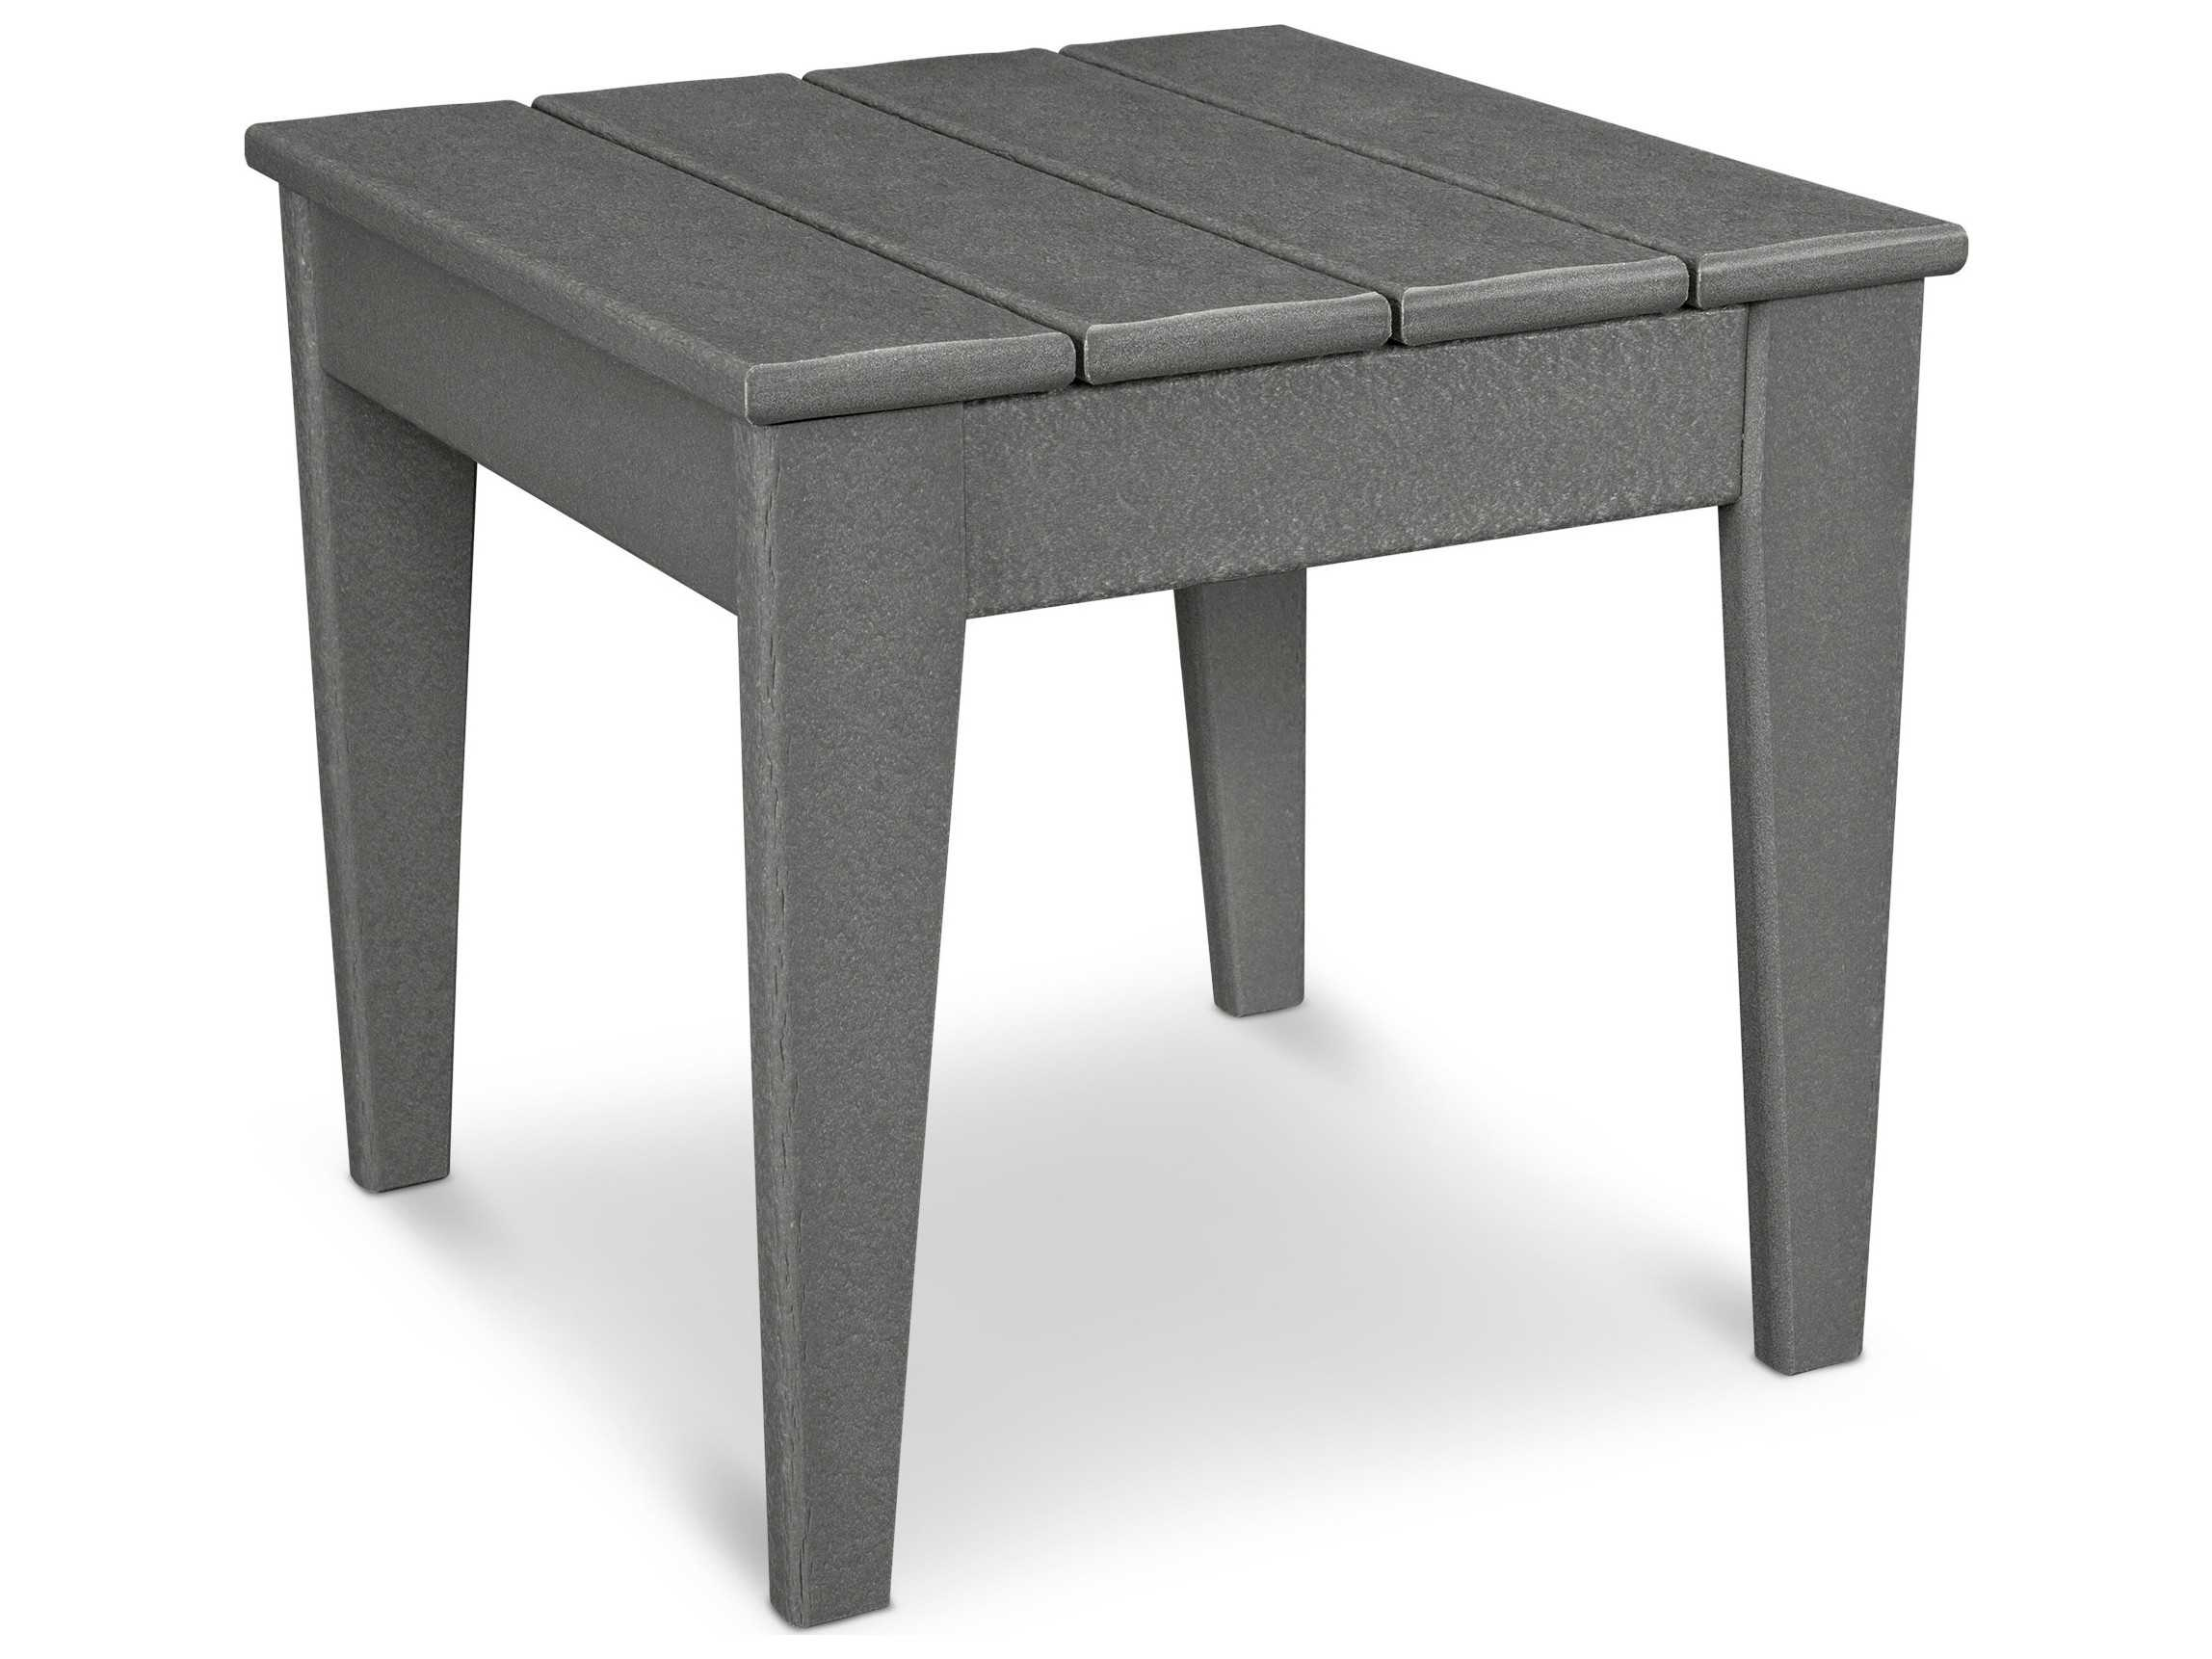 POLYWOOD® Modern Recycled Plastic 18.25 Square Side Table